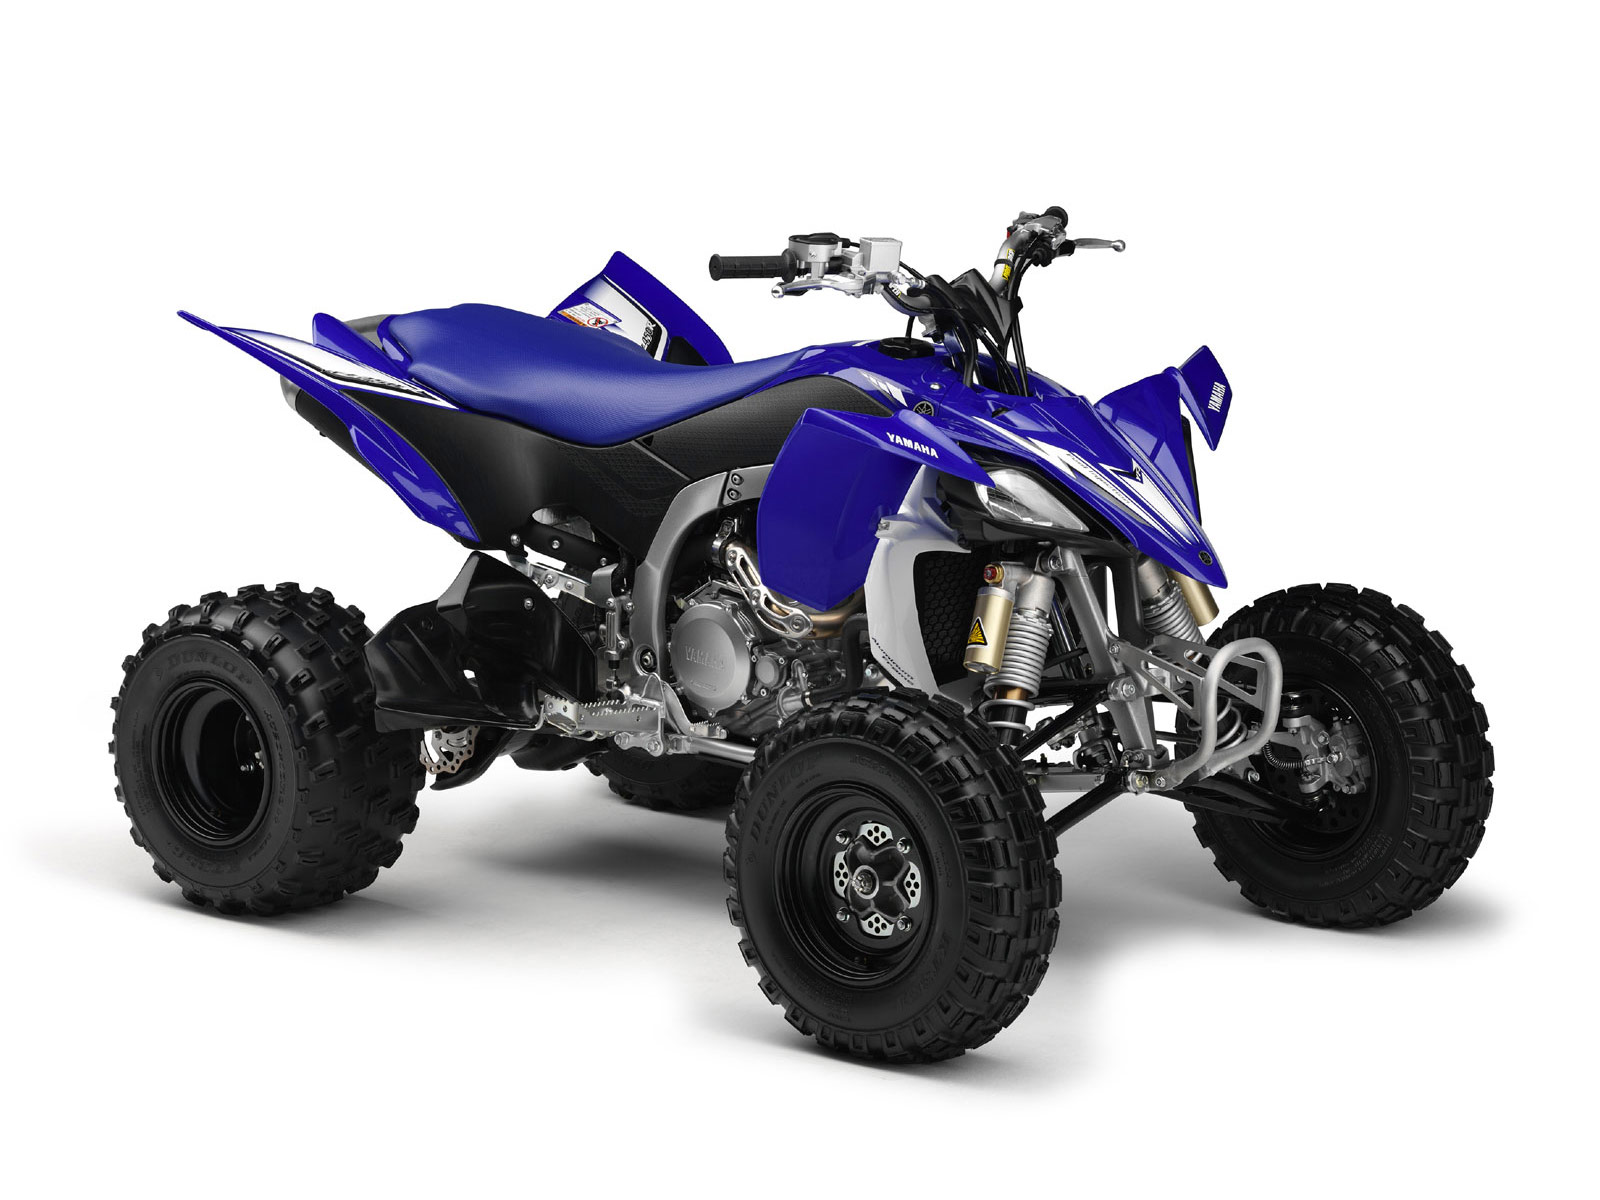 2009 YAMAHA YFZ450R ATV pictures | Accident lawyers info |